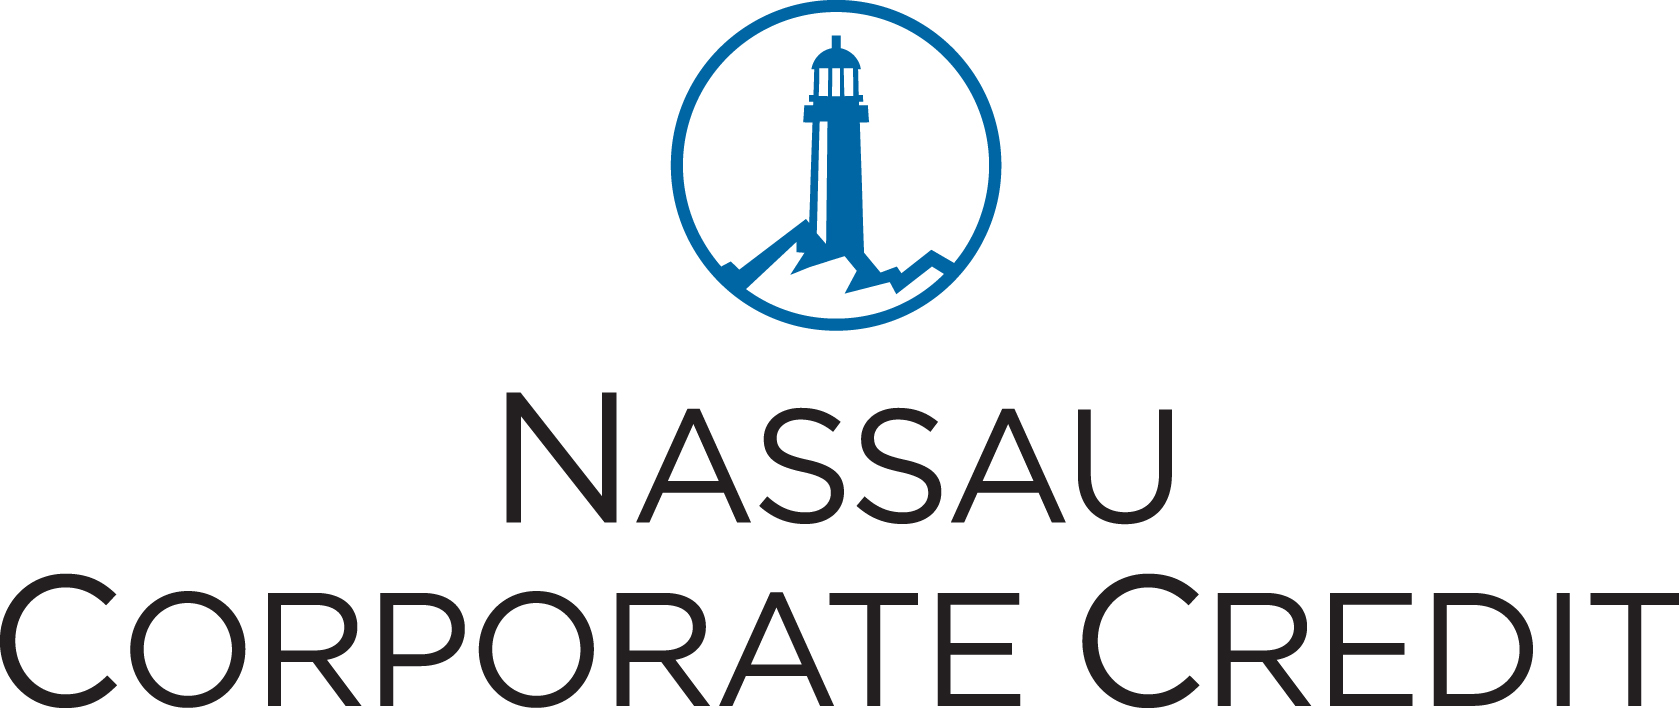 "Nassau Corporate Credit Nominated for ""Best US CLO Manager"" and ""Best New US CLO"" for the 2020 Creditflux Manager Awards"